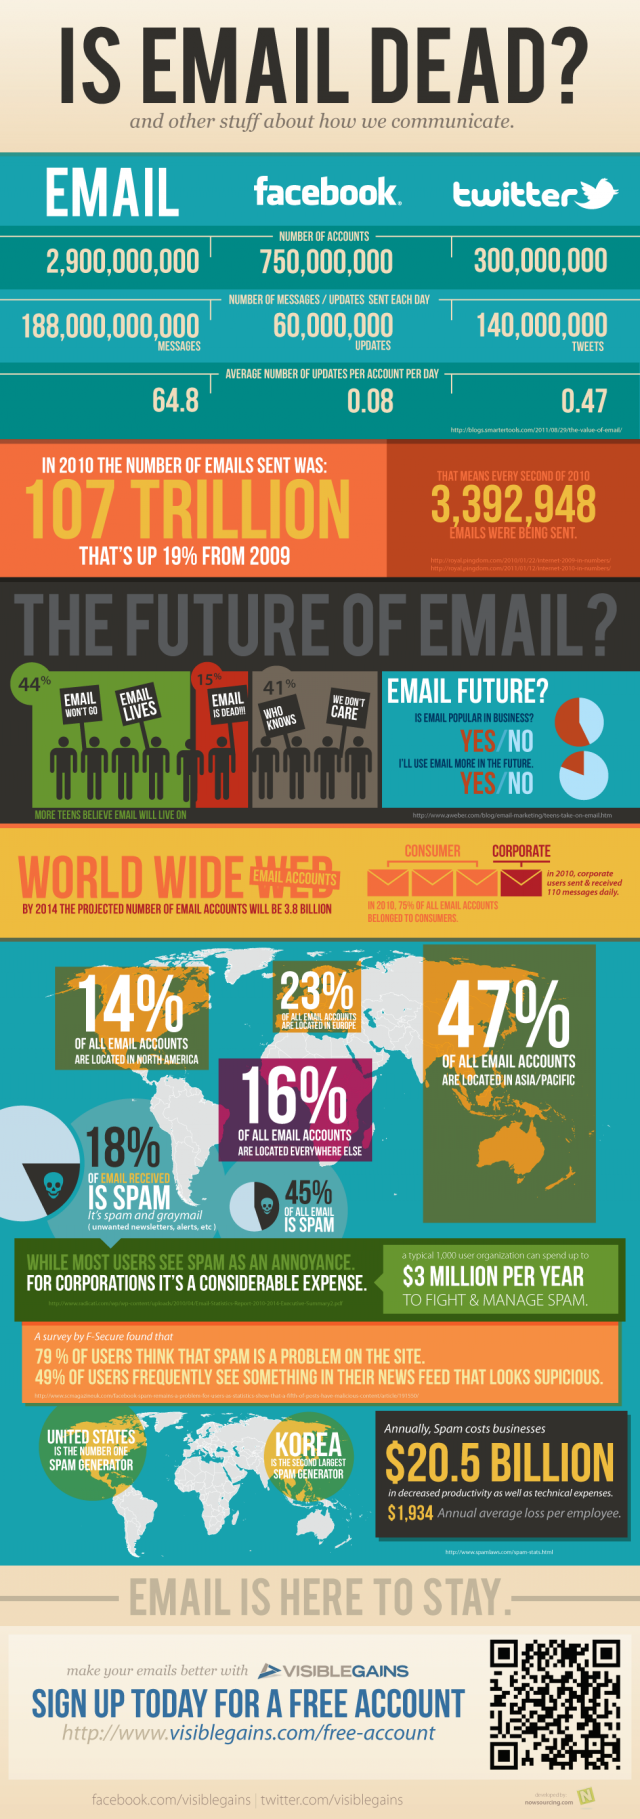 email usage infographic